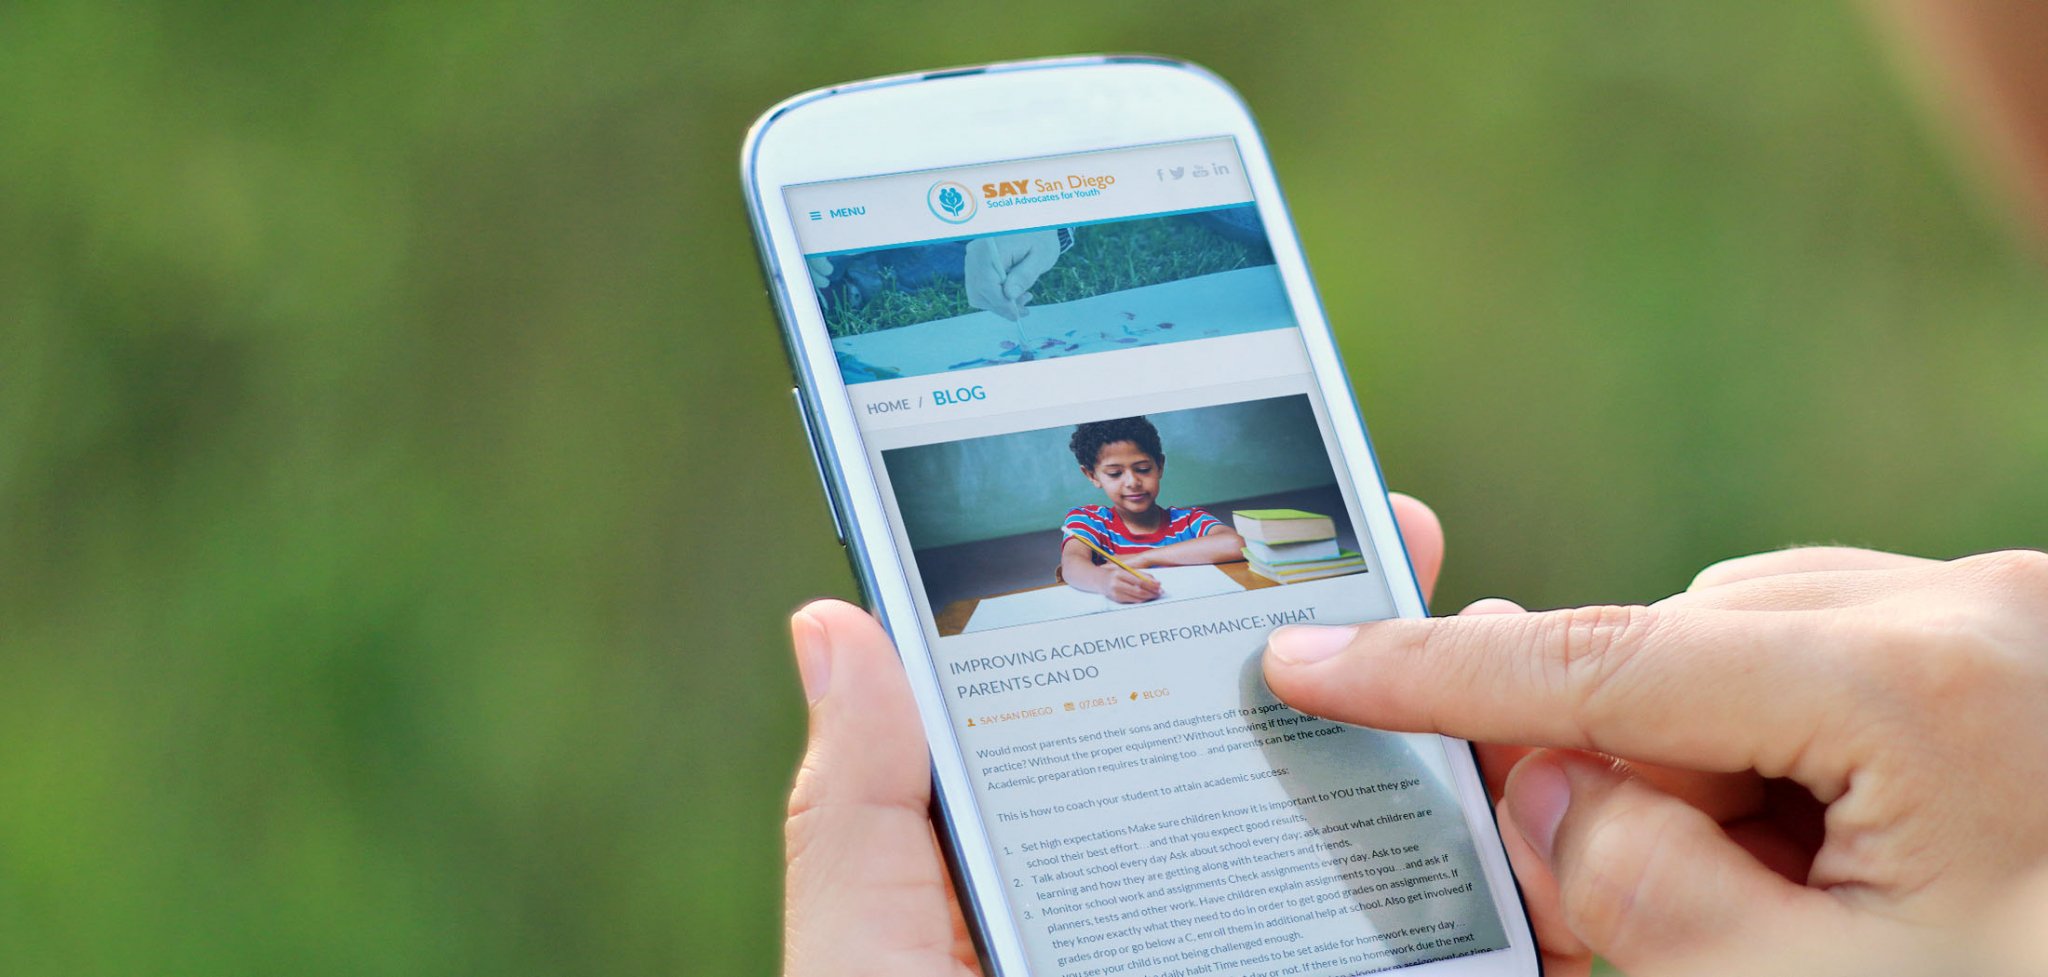 Child Advocacy Website Designs for Mobile